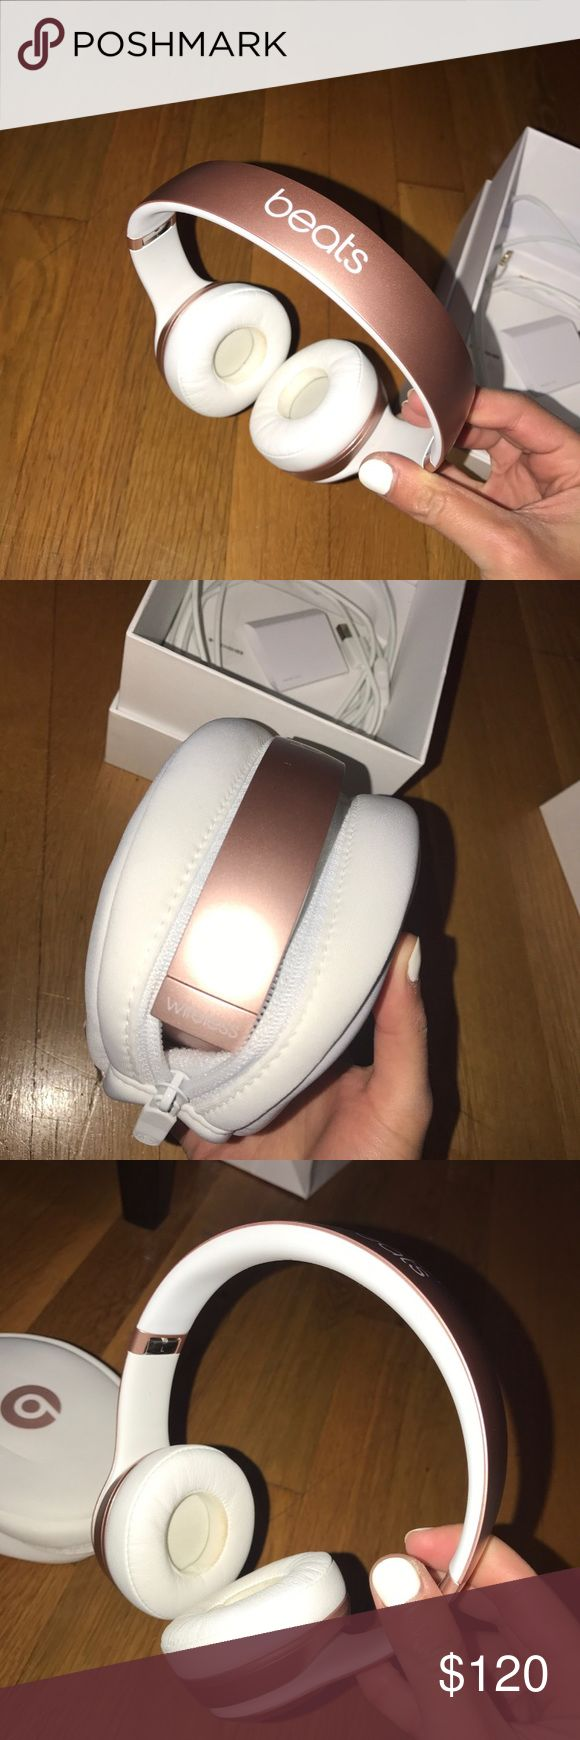 Beats solo 2 wireless rose gold Brand new ! Other